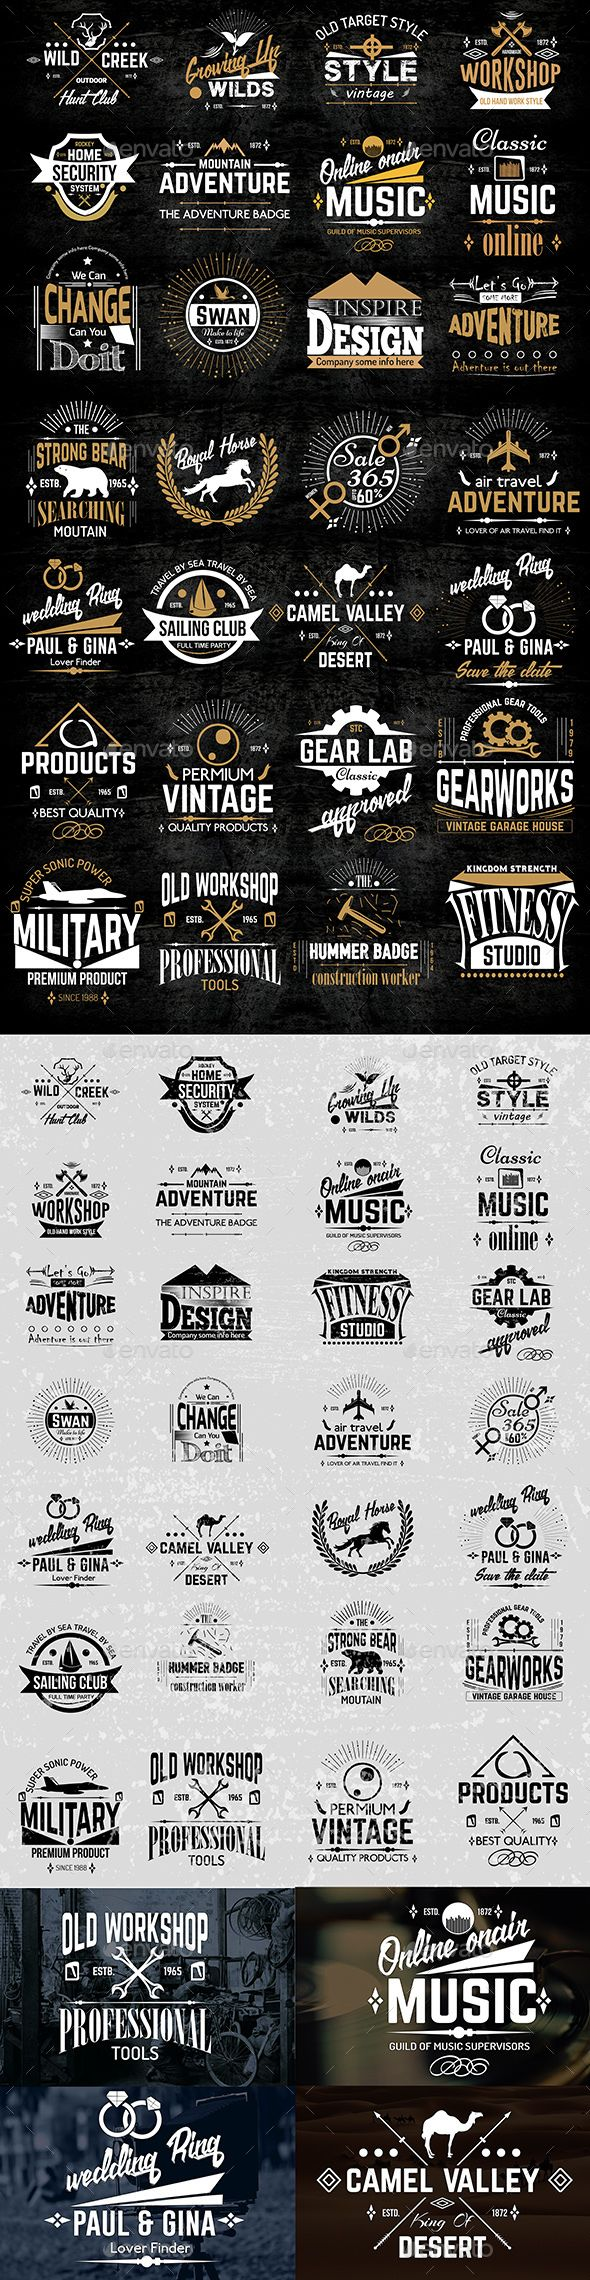 Vintage Logo & Badge Collection Vector Template EPS, AI #design Download: http://graphicriver.net/item/vintage-logo-badge-collection/13435764?ref=ksioks